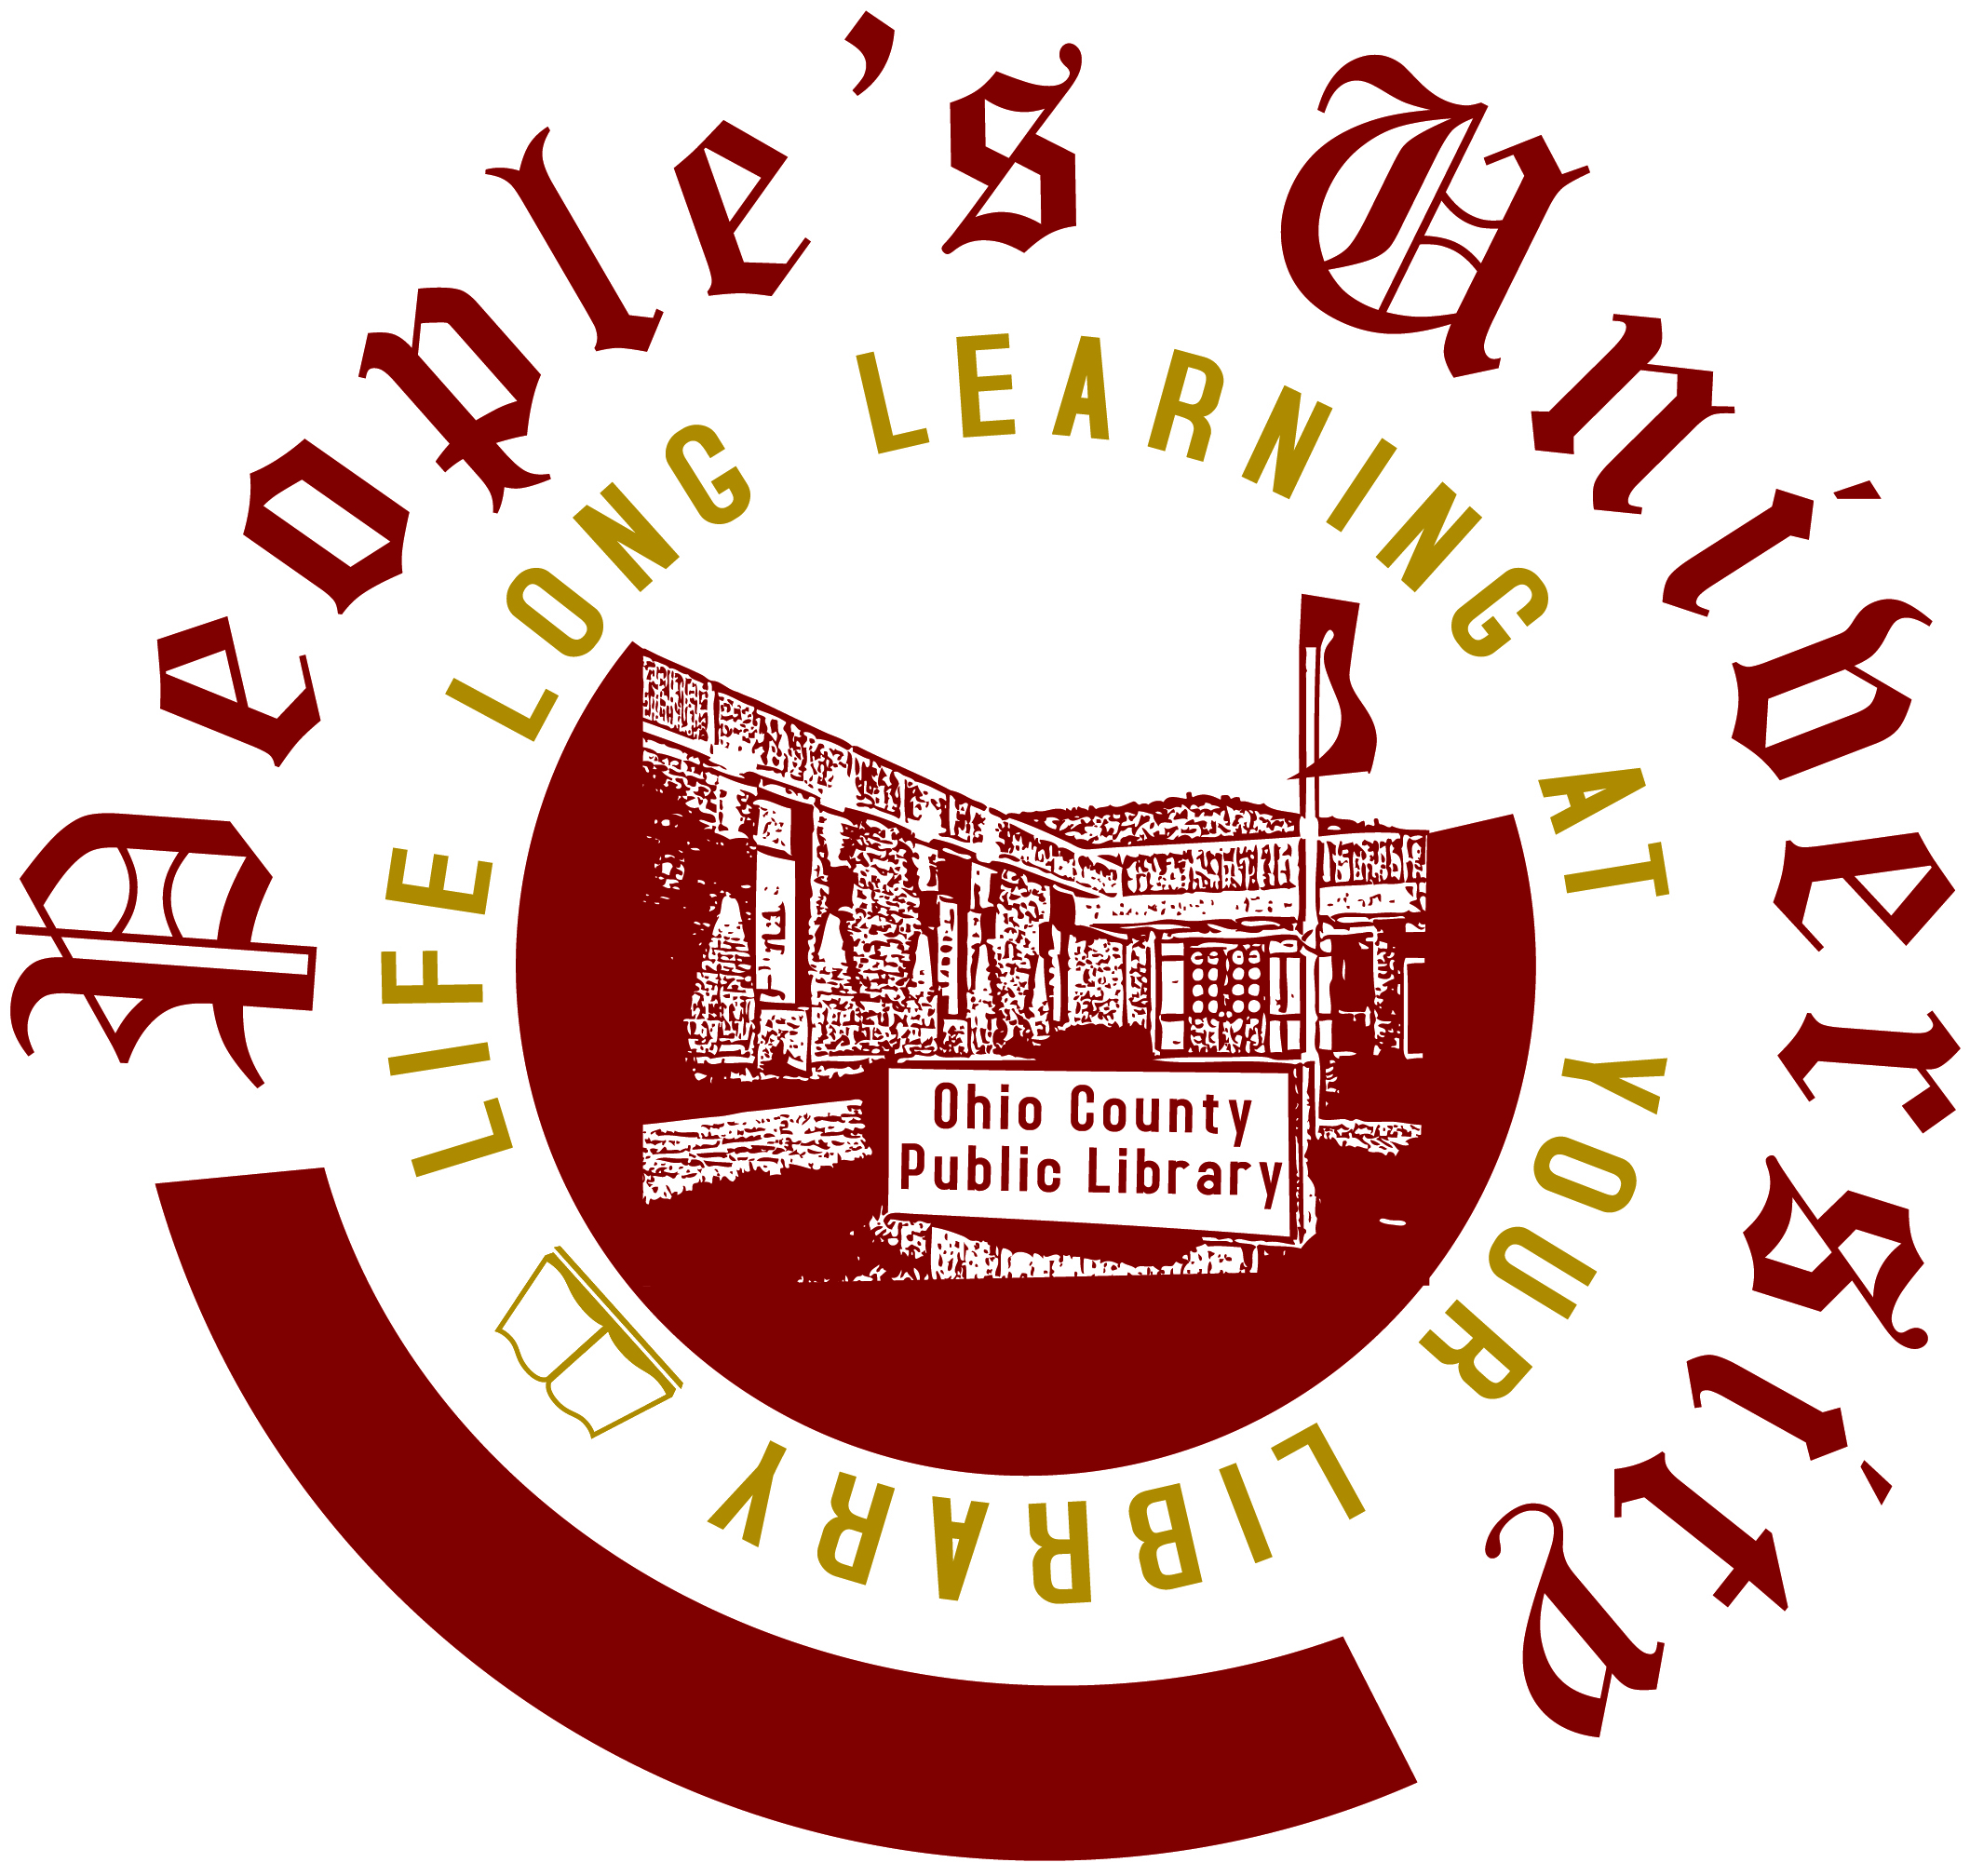 The People's University logo